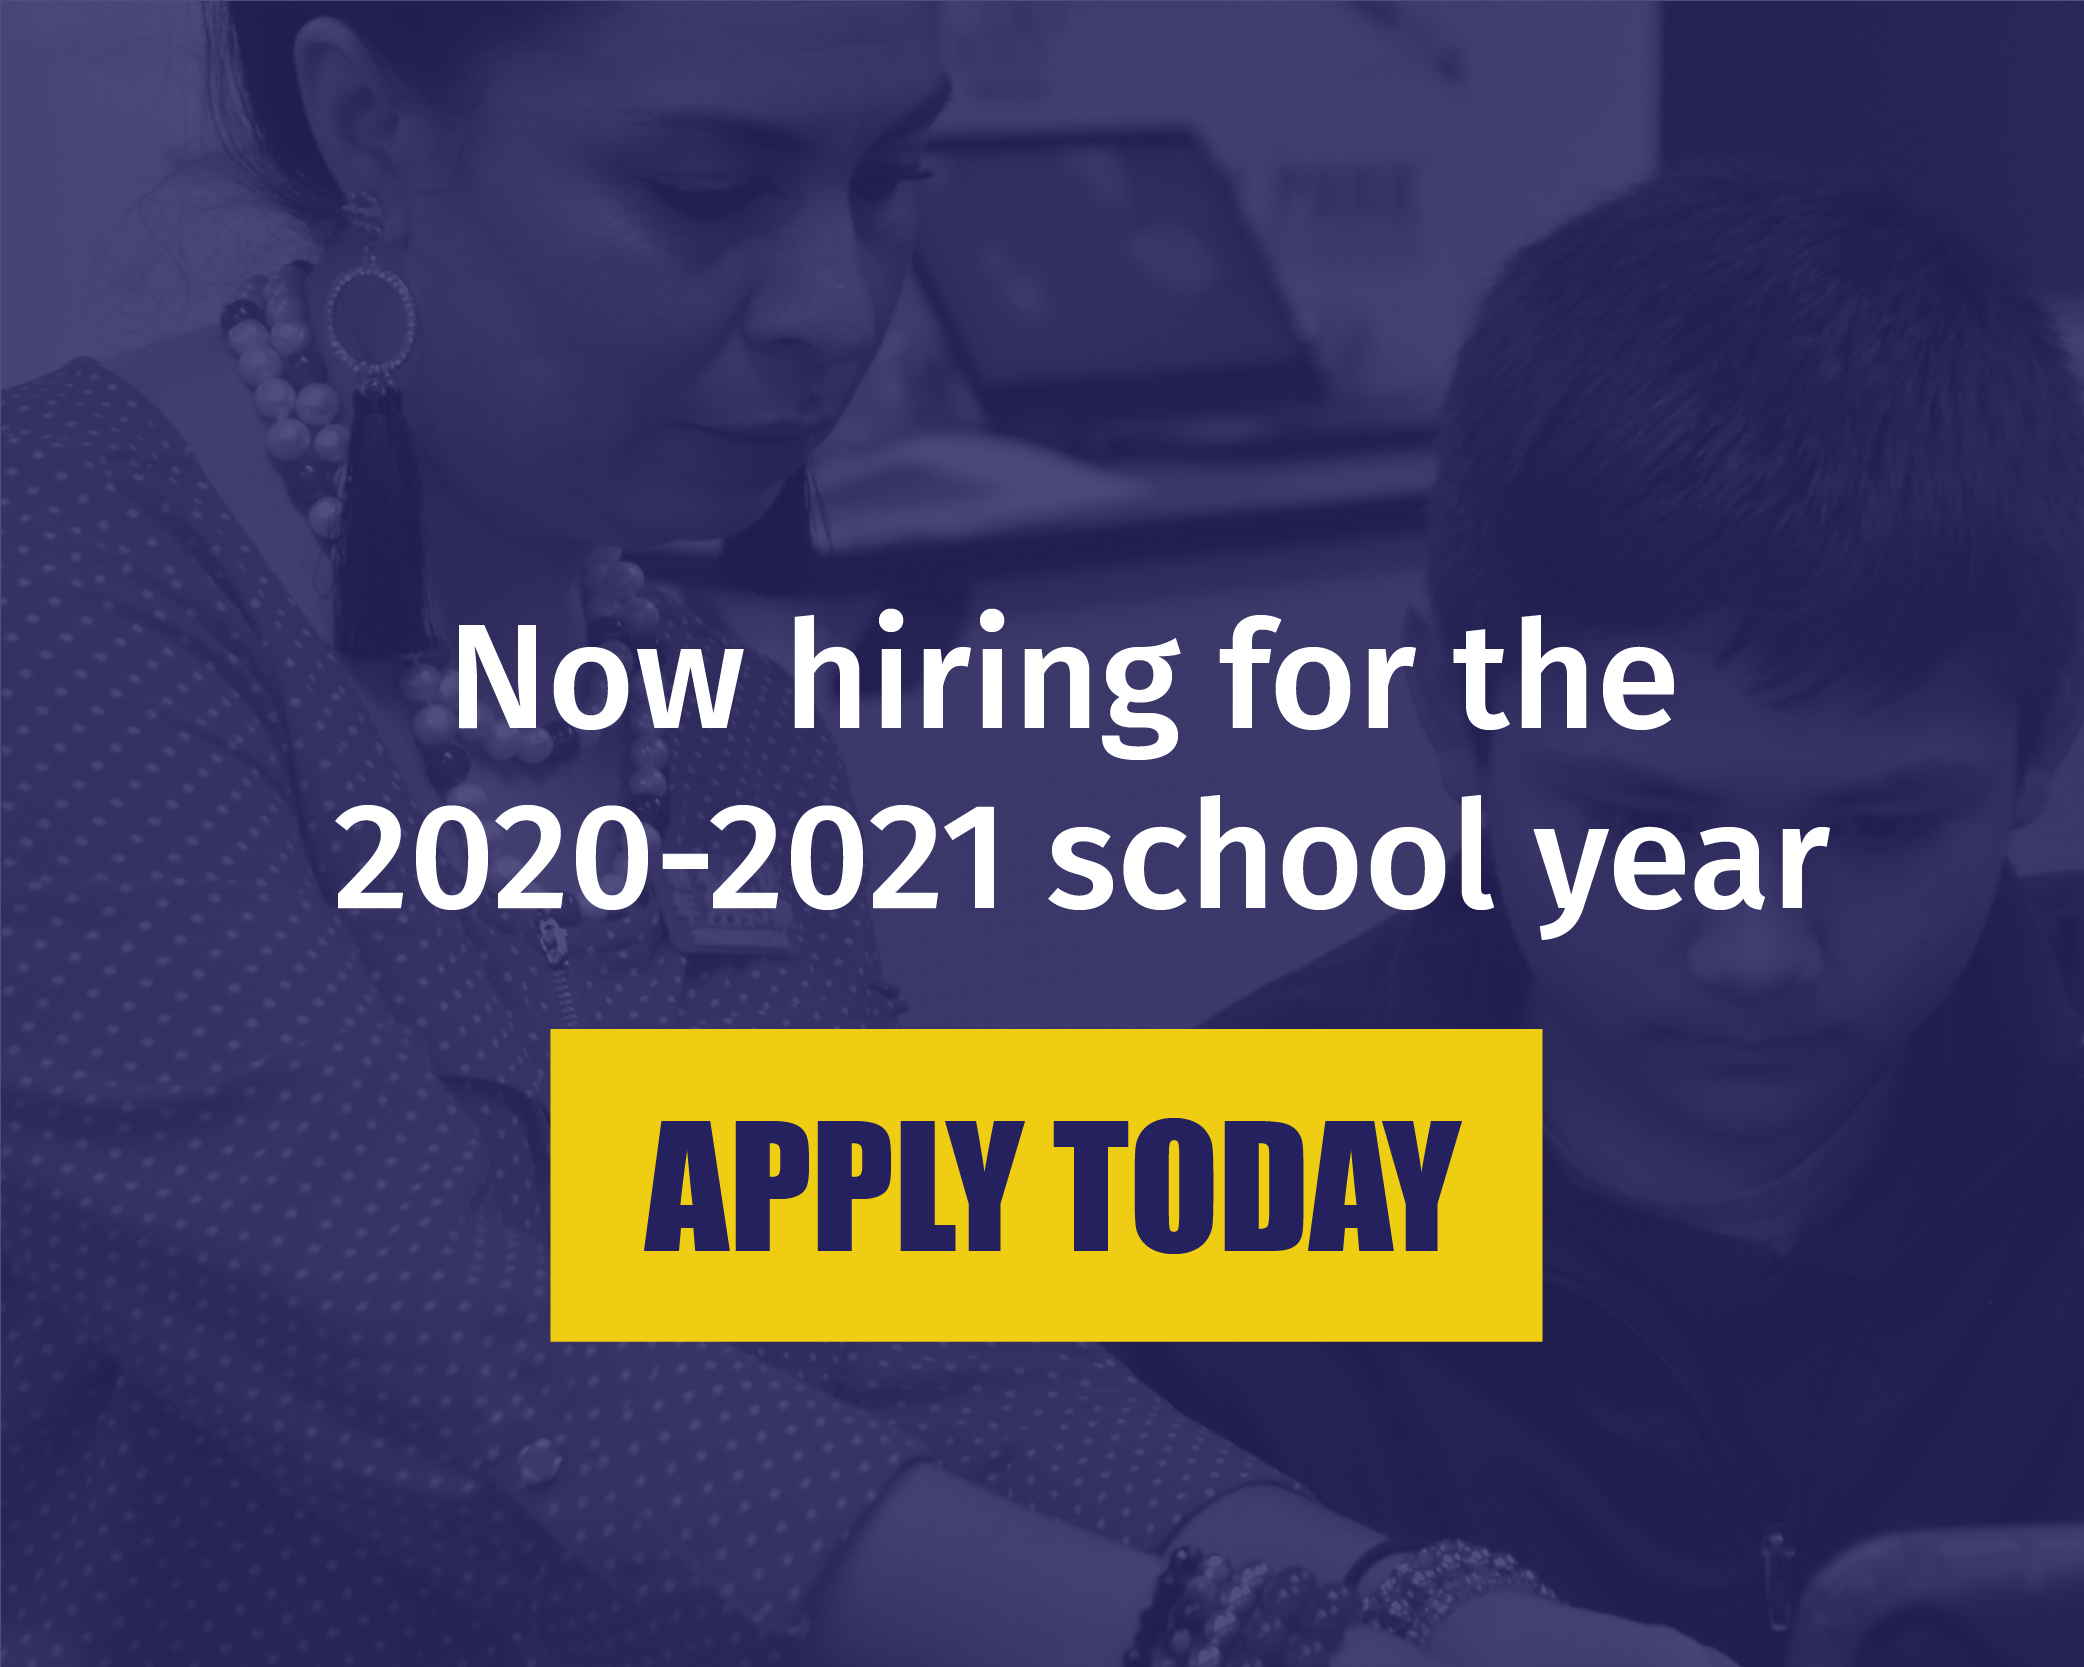 now hiring for SY 20-21. Apply today.